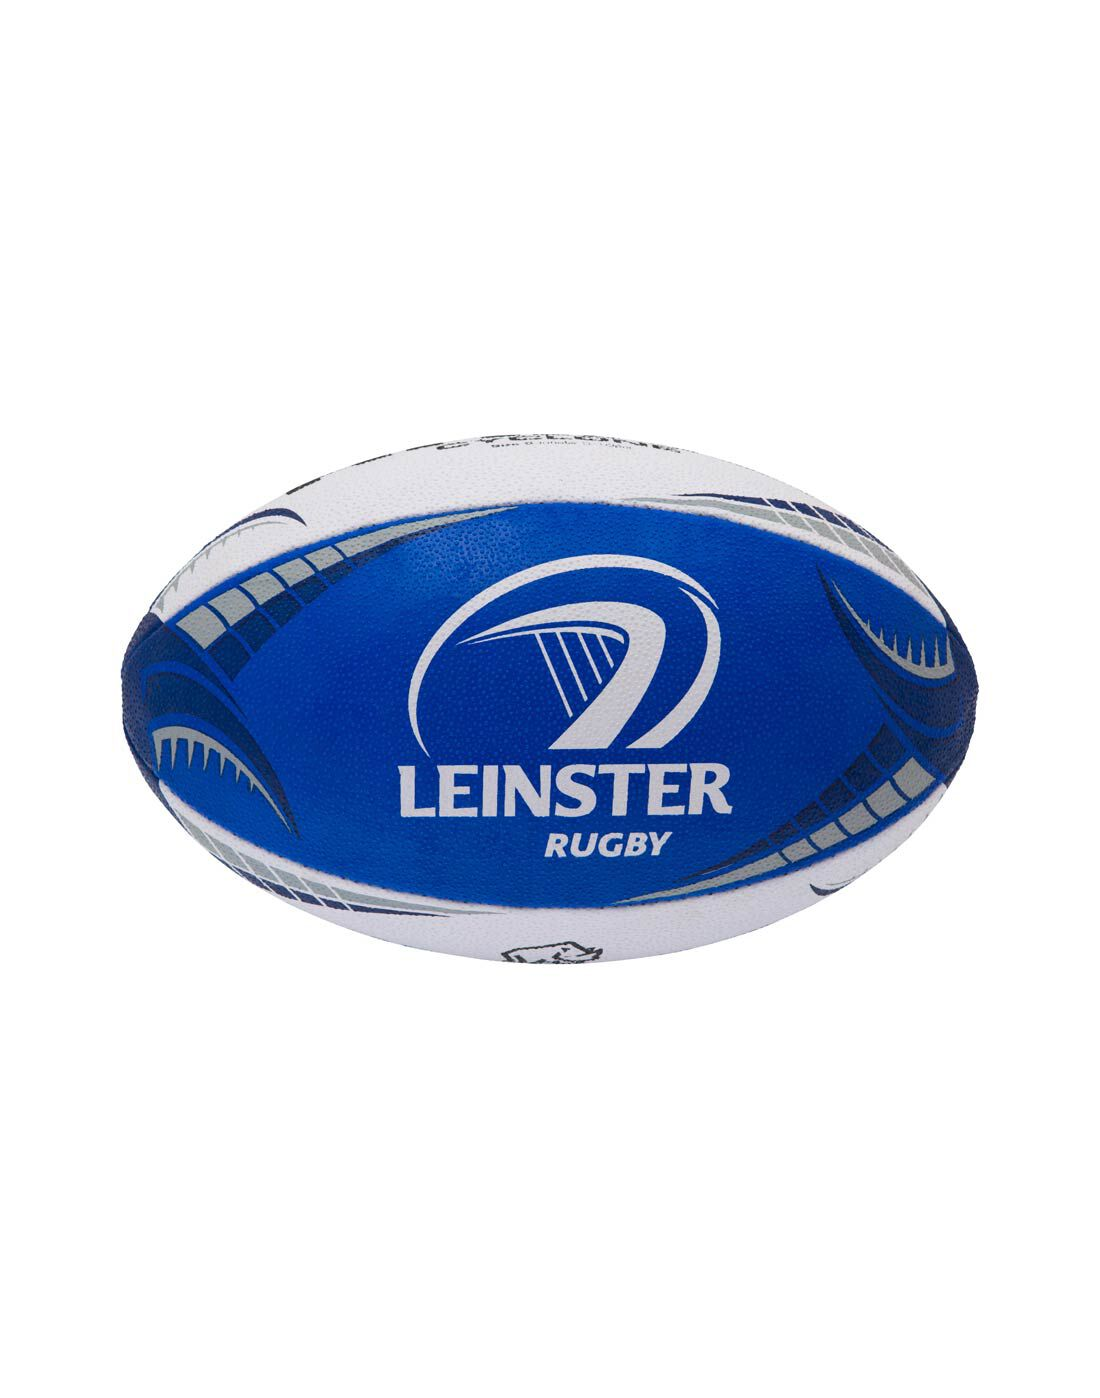 Rhino Leinster Rugby Ball   Life Style Sports